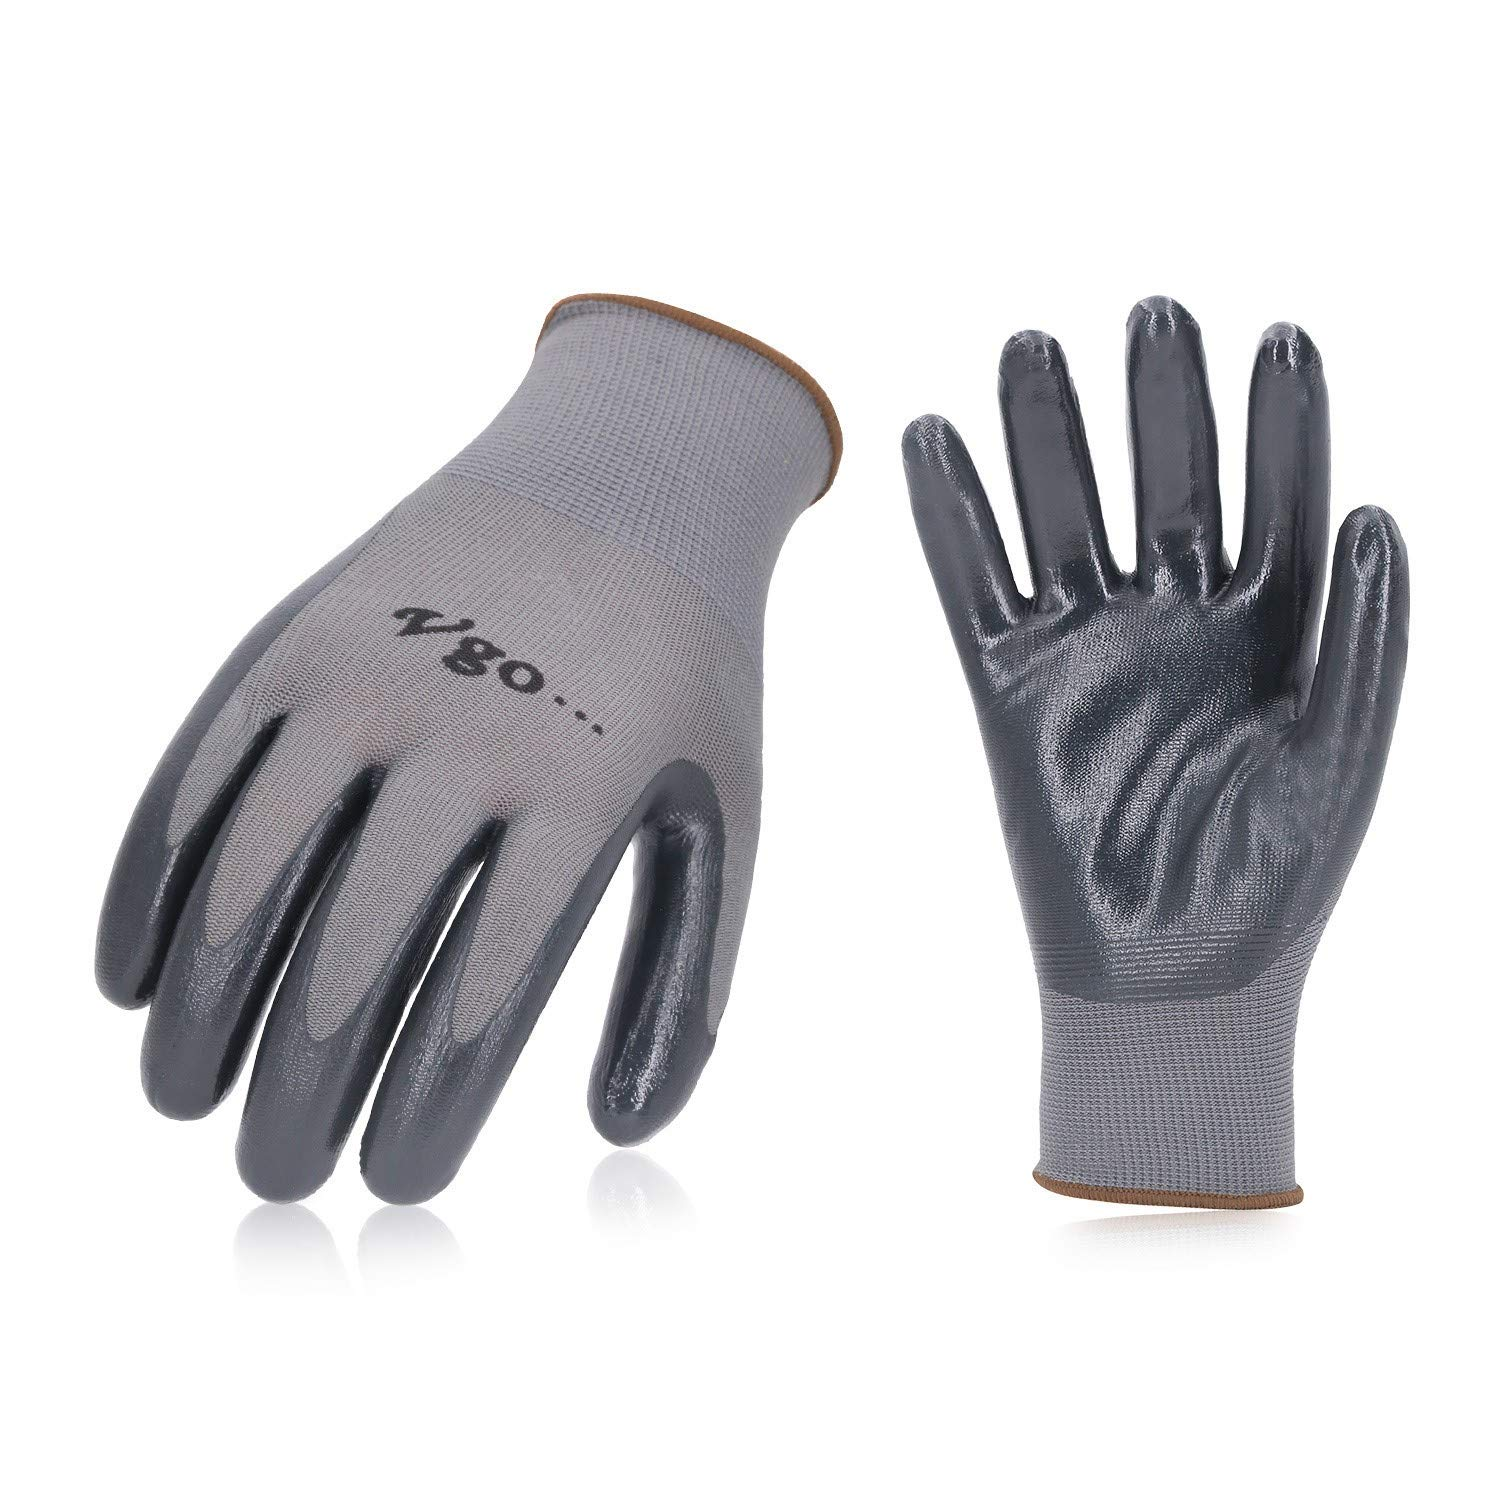 Vgo 10Pairs Nitrile Coating Gardening and Work Gloves (Size L,Grey,NT2110)